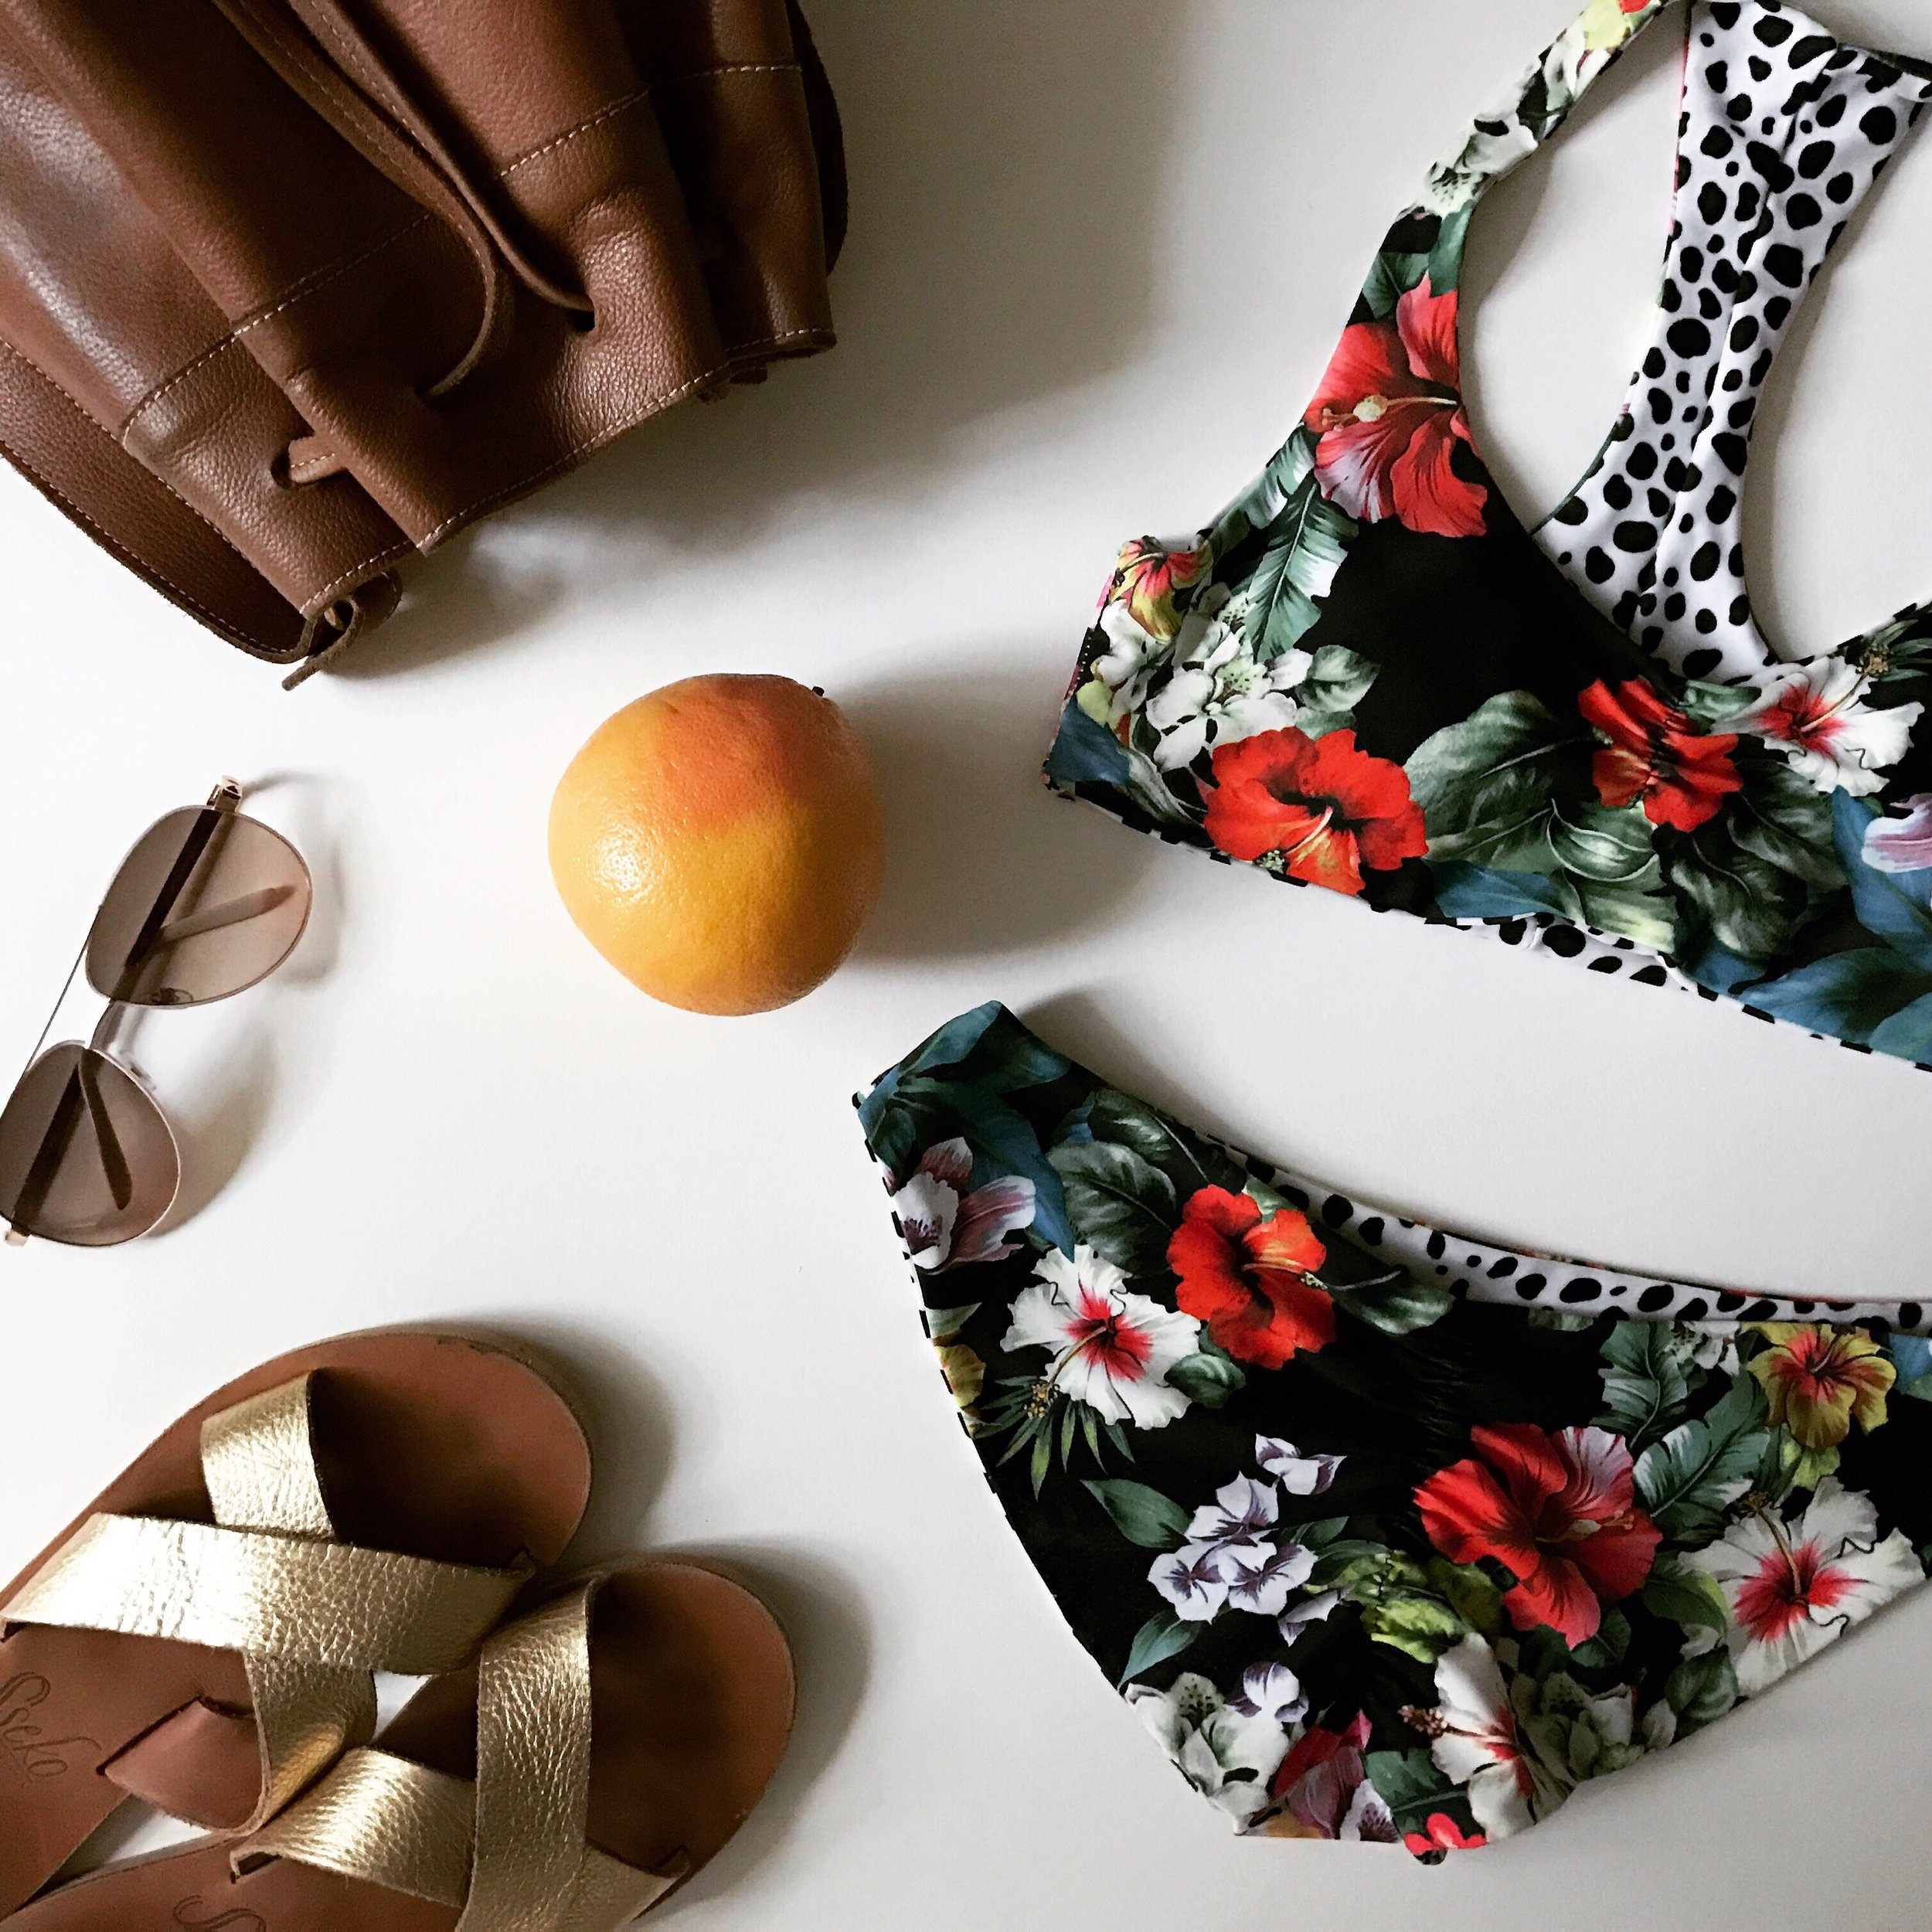 ethical swimsuits for your spring break